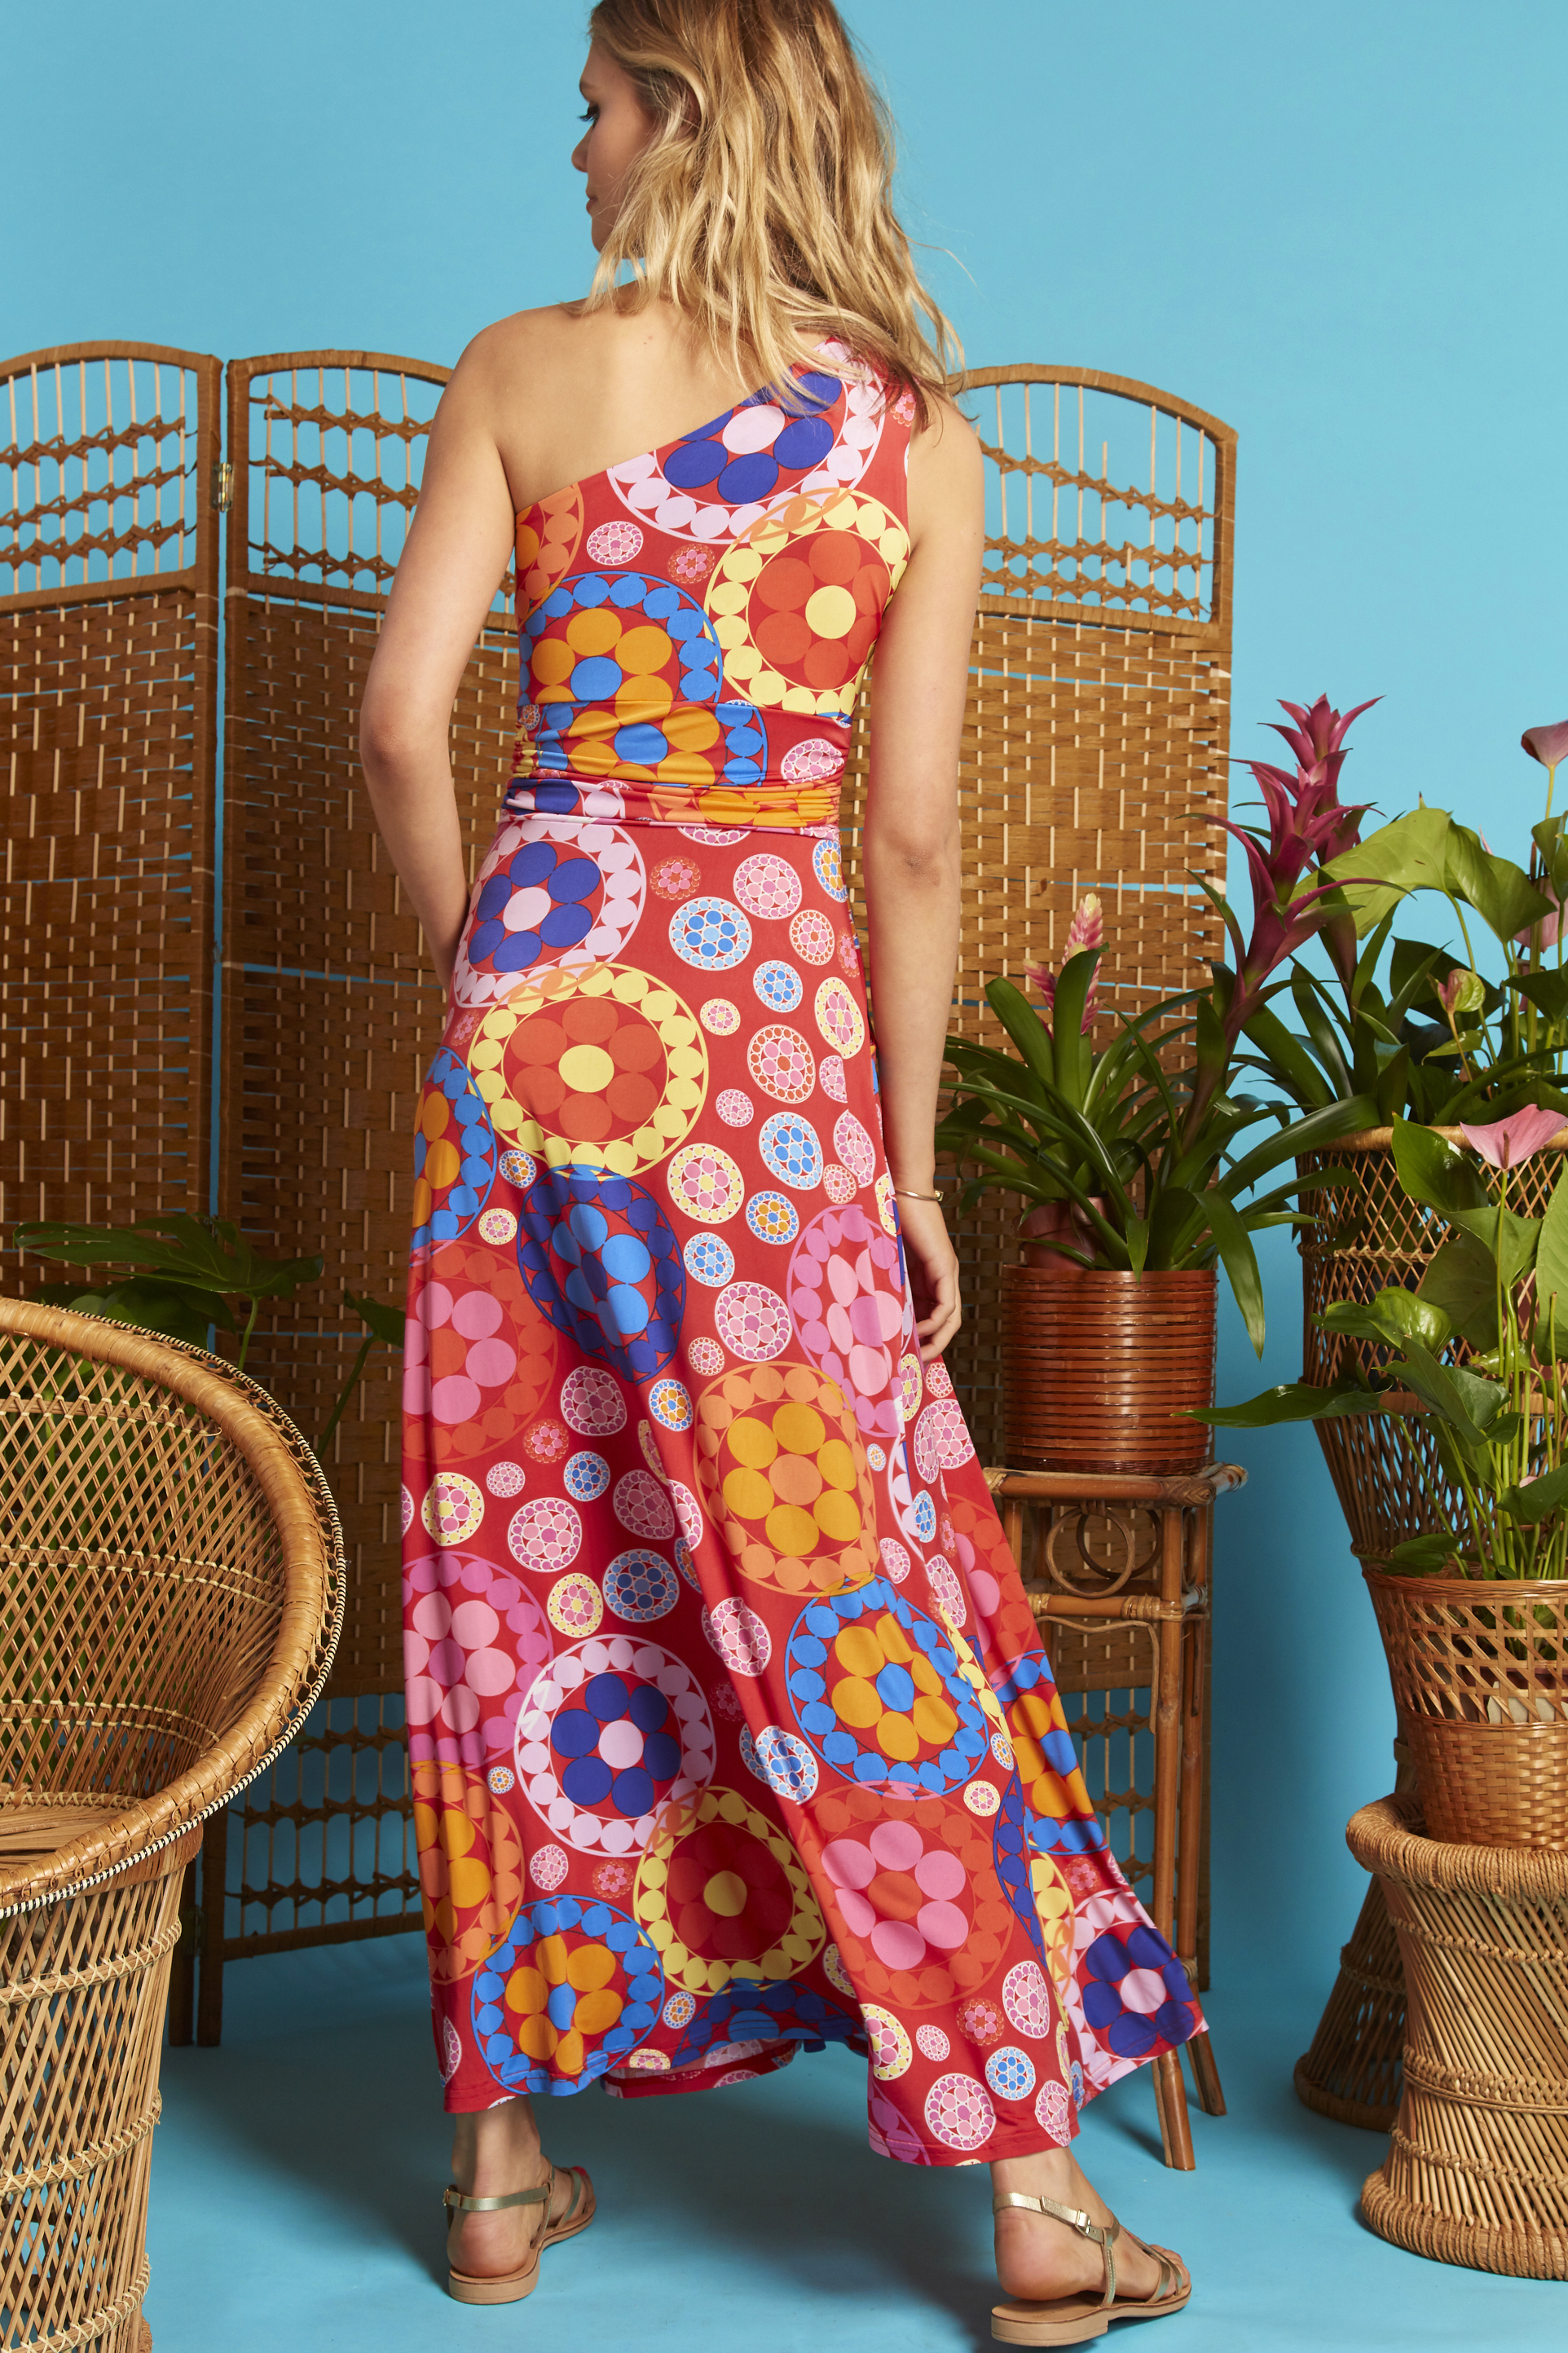 Rosa One Shoulder Dress in Daisy Print